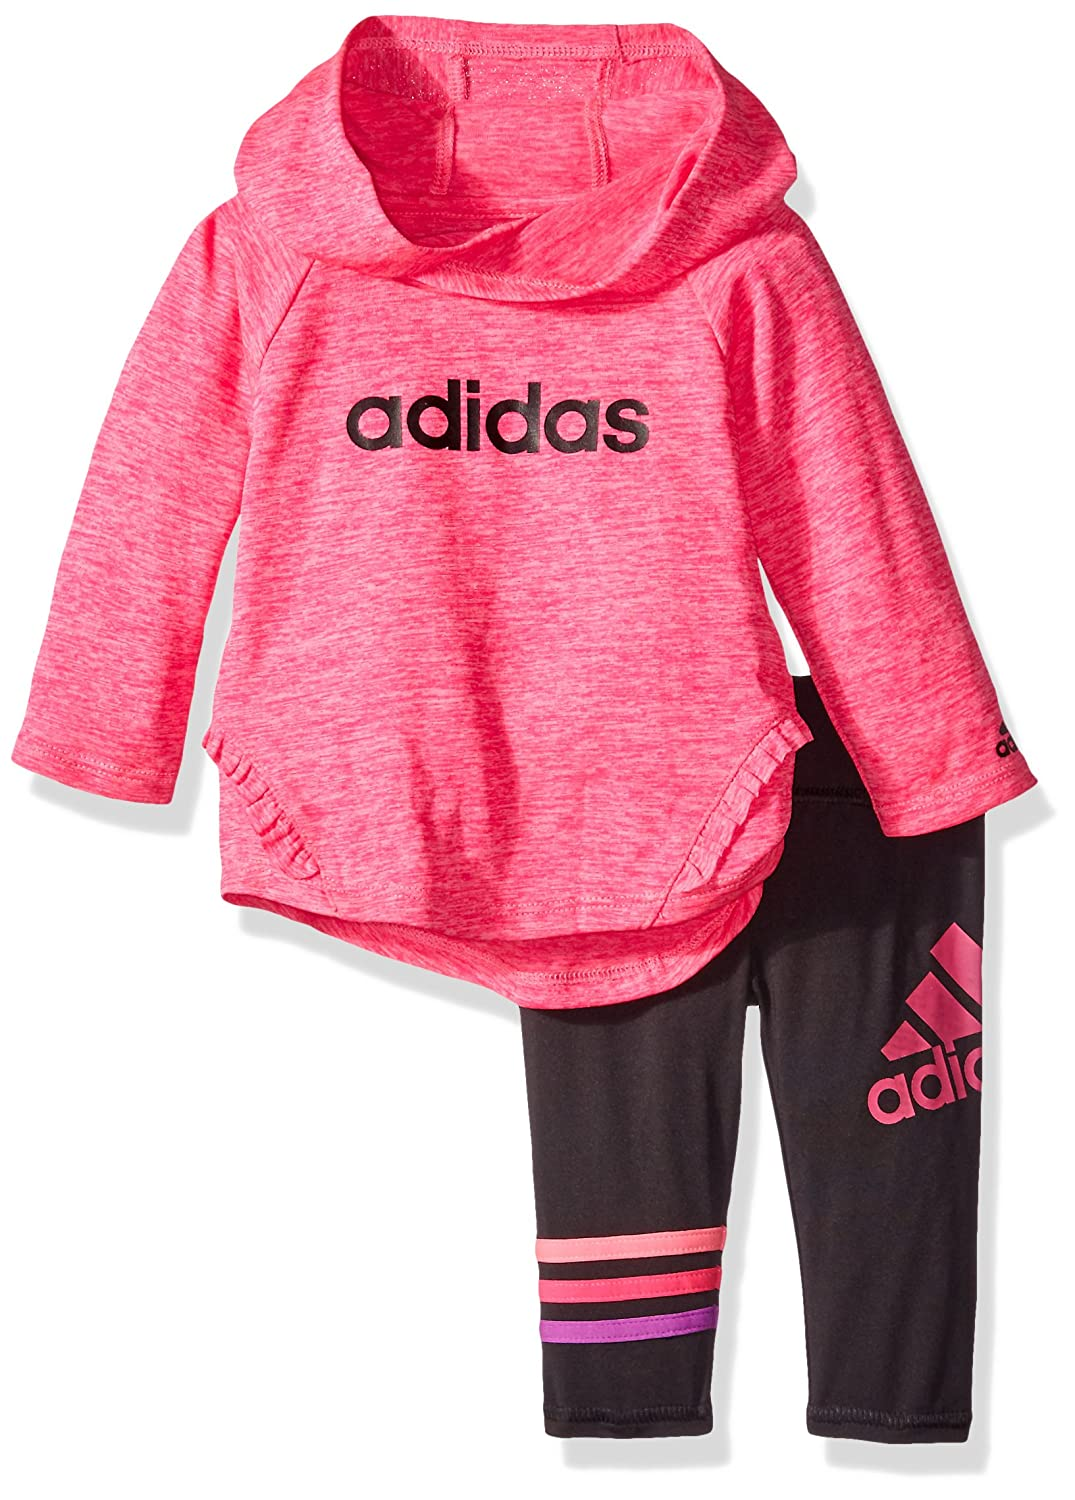 2d12b8b75a adidas Baby Girls Hooded Top and Legging Clothing Set Outfit